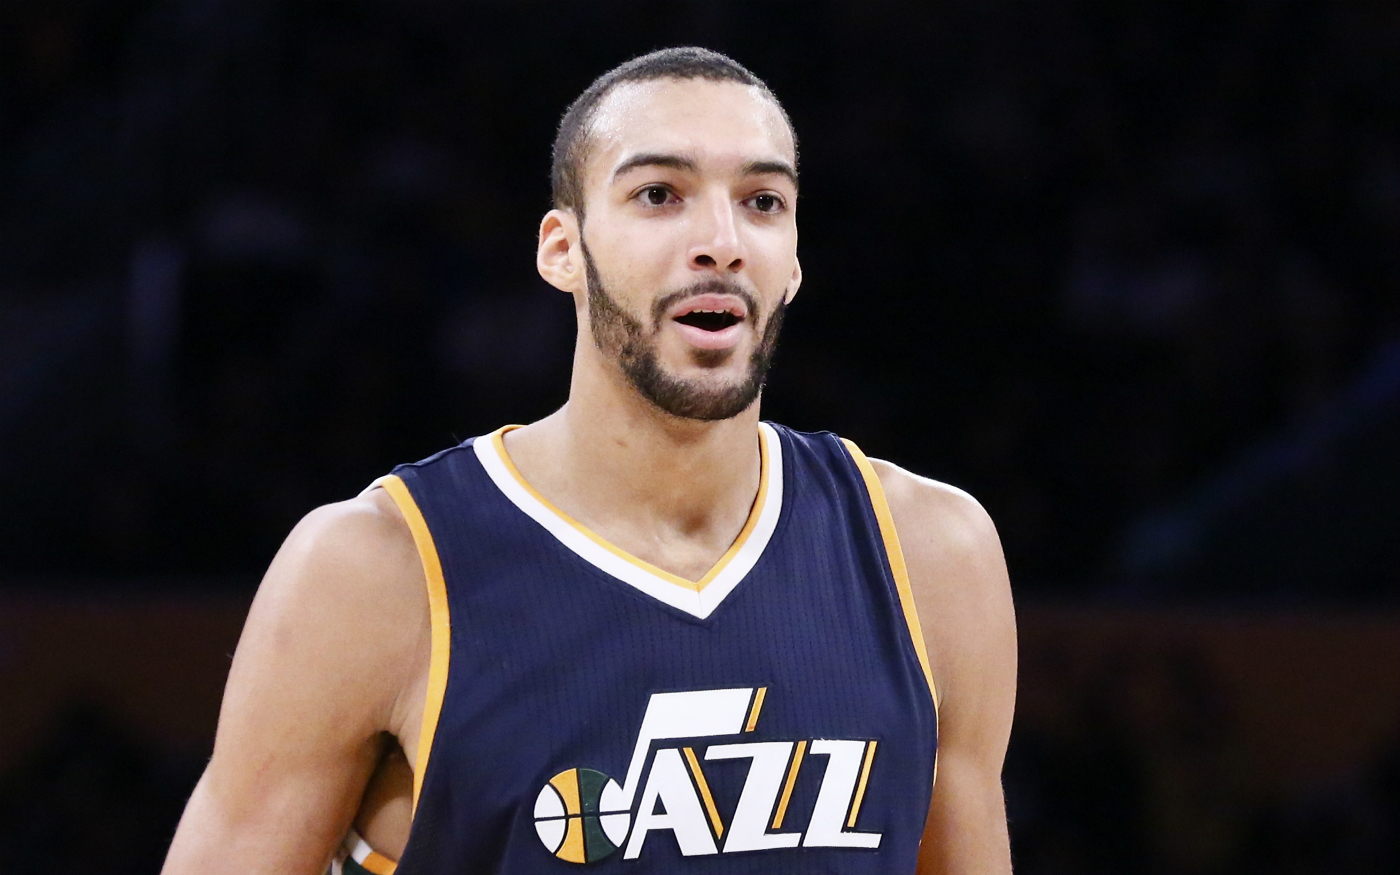 Privé de All-Star Game, Rudy Gobert vise le DPOY